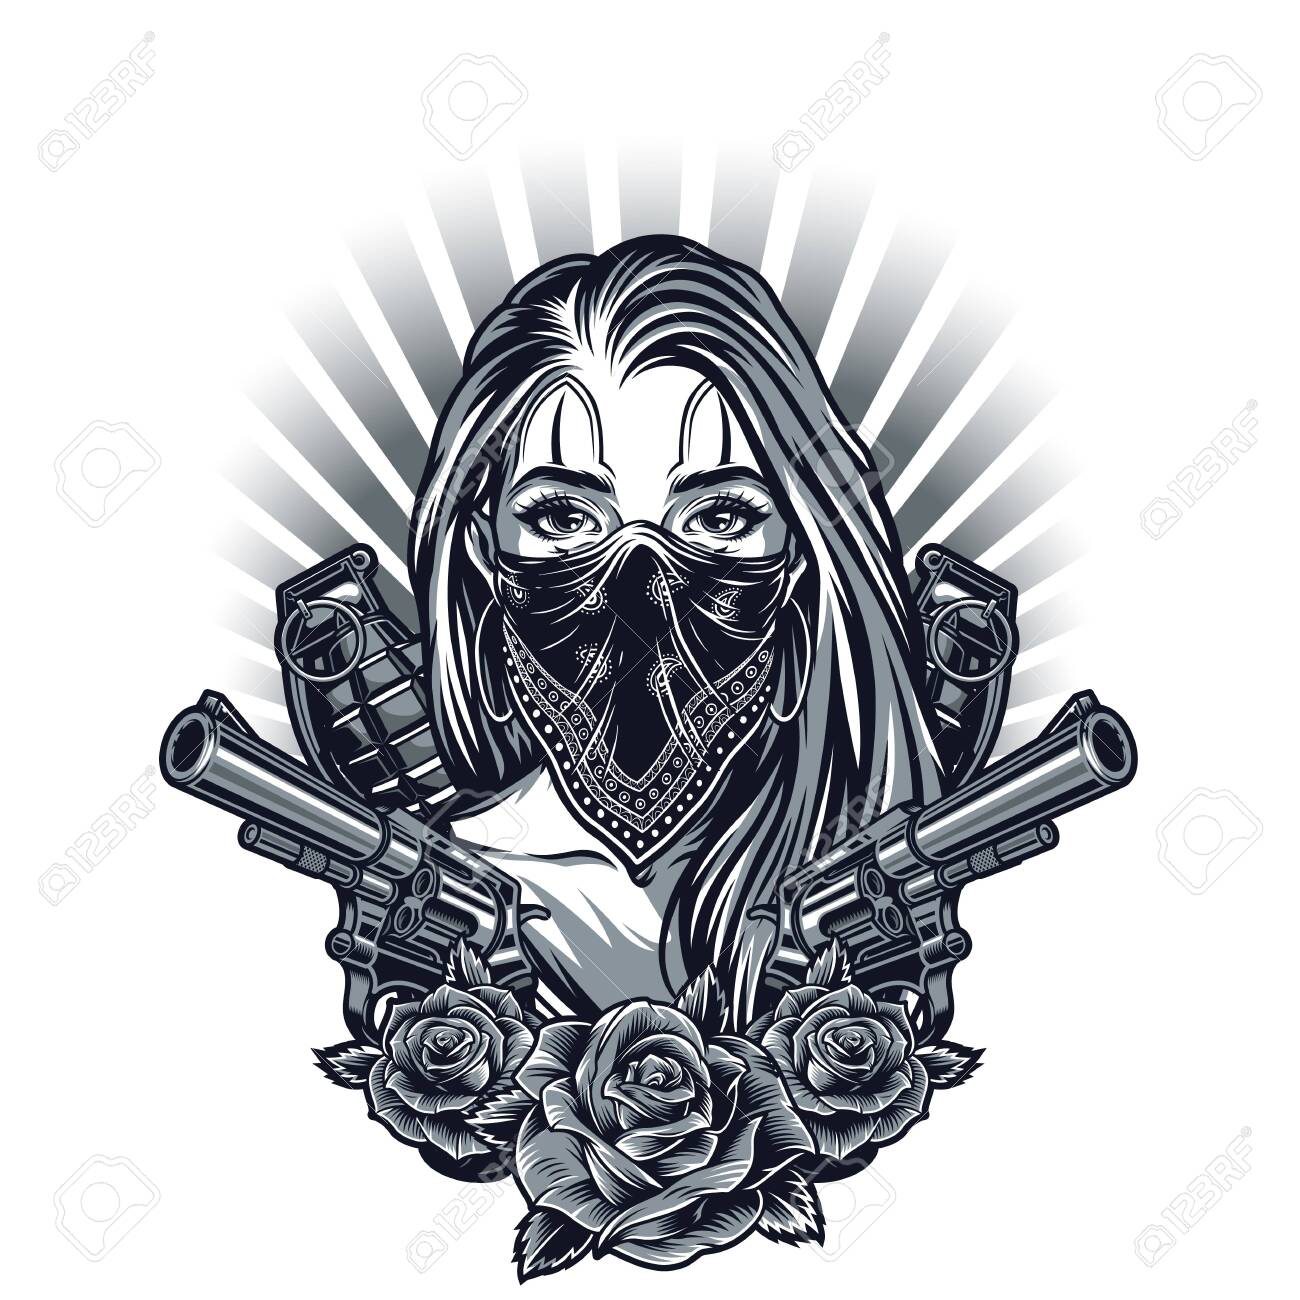 Vintage chicano tattoo concept with girl in bandana guns grenades and rose flowers isolated vector illustration - 131929646